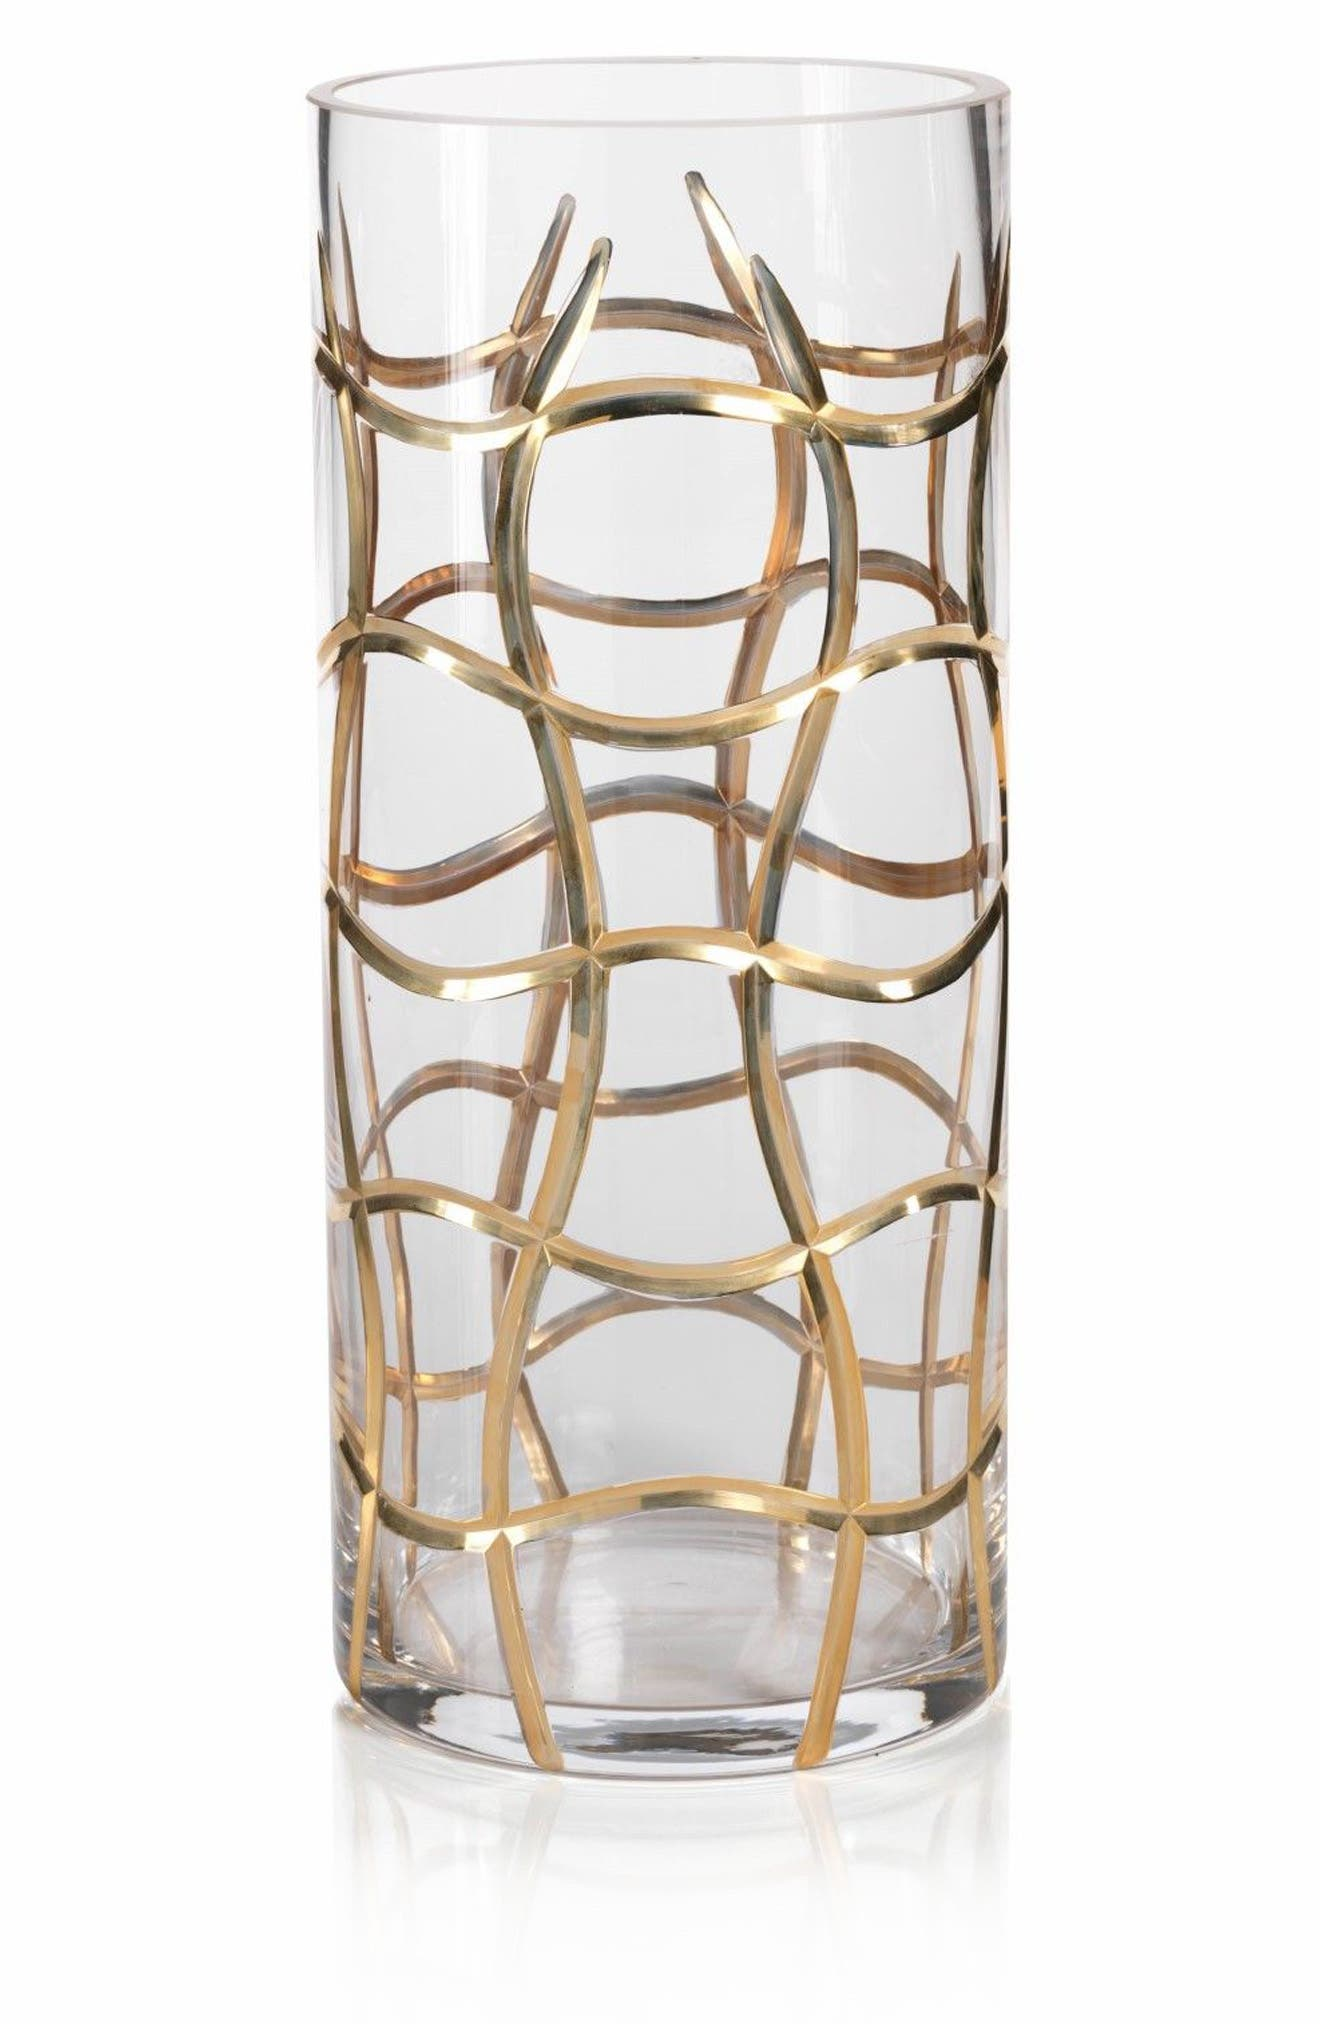 Large Groove Hurricane Candleholder,                             Main thumbnail 1, color,                             Clear/ Gold/ Metallic